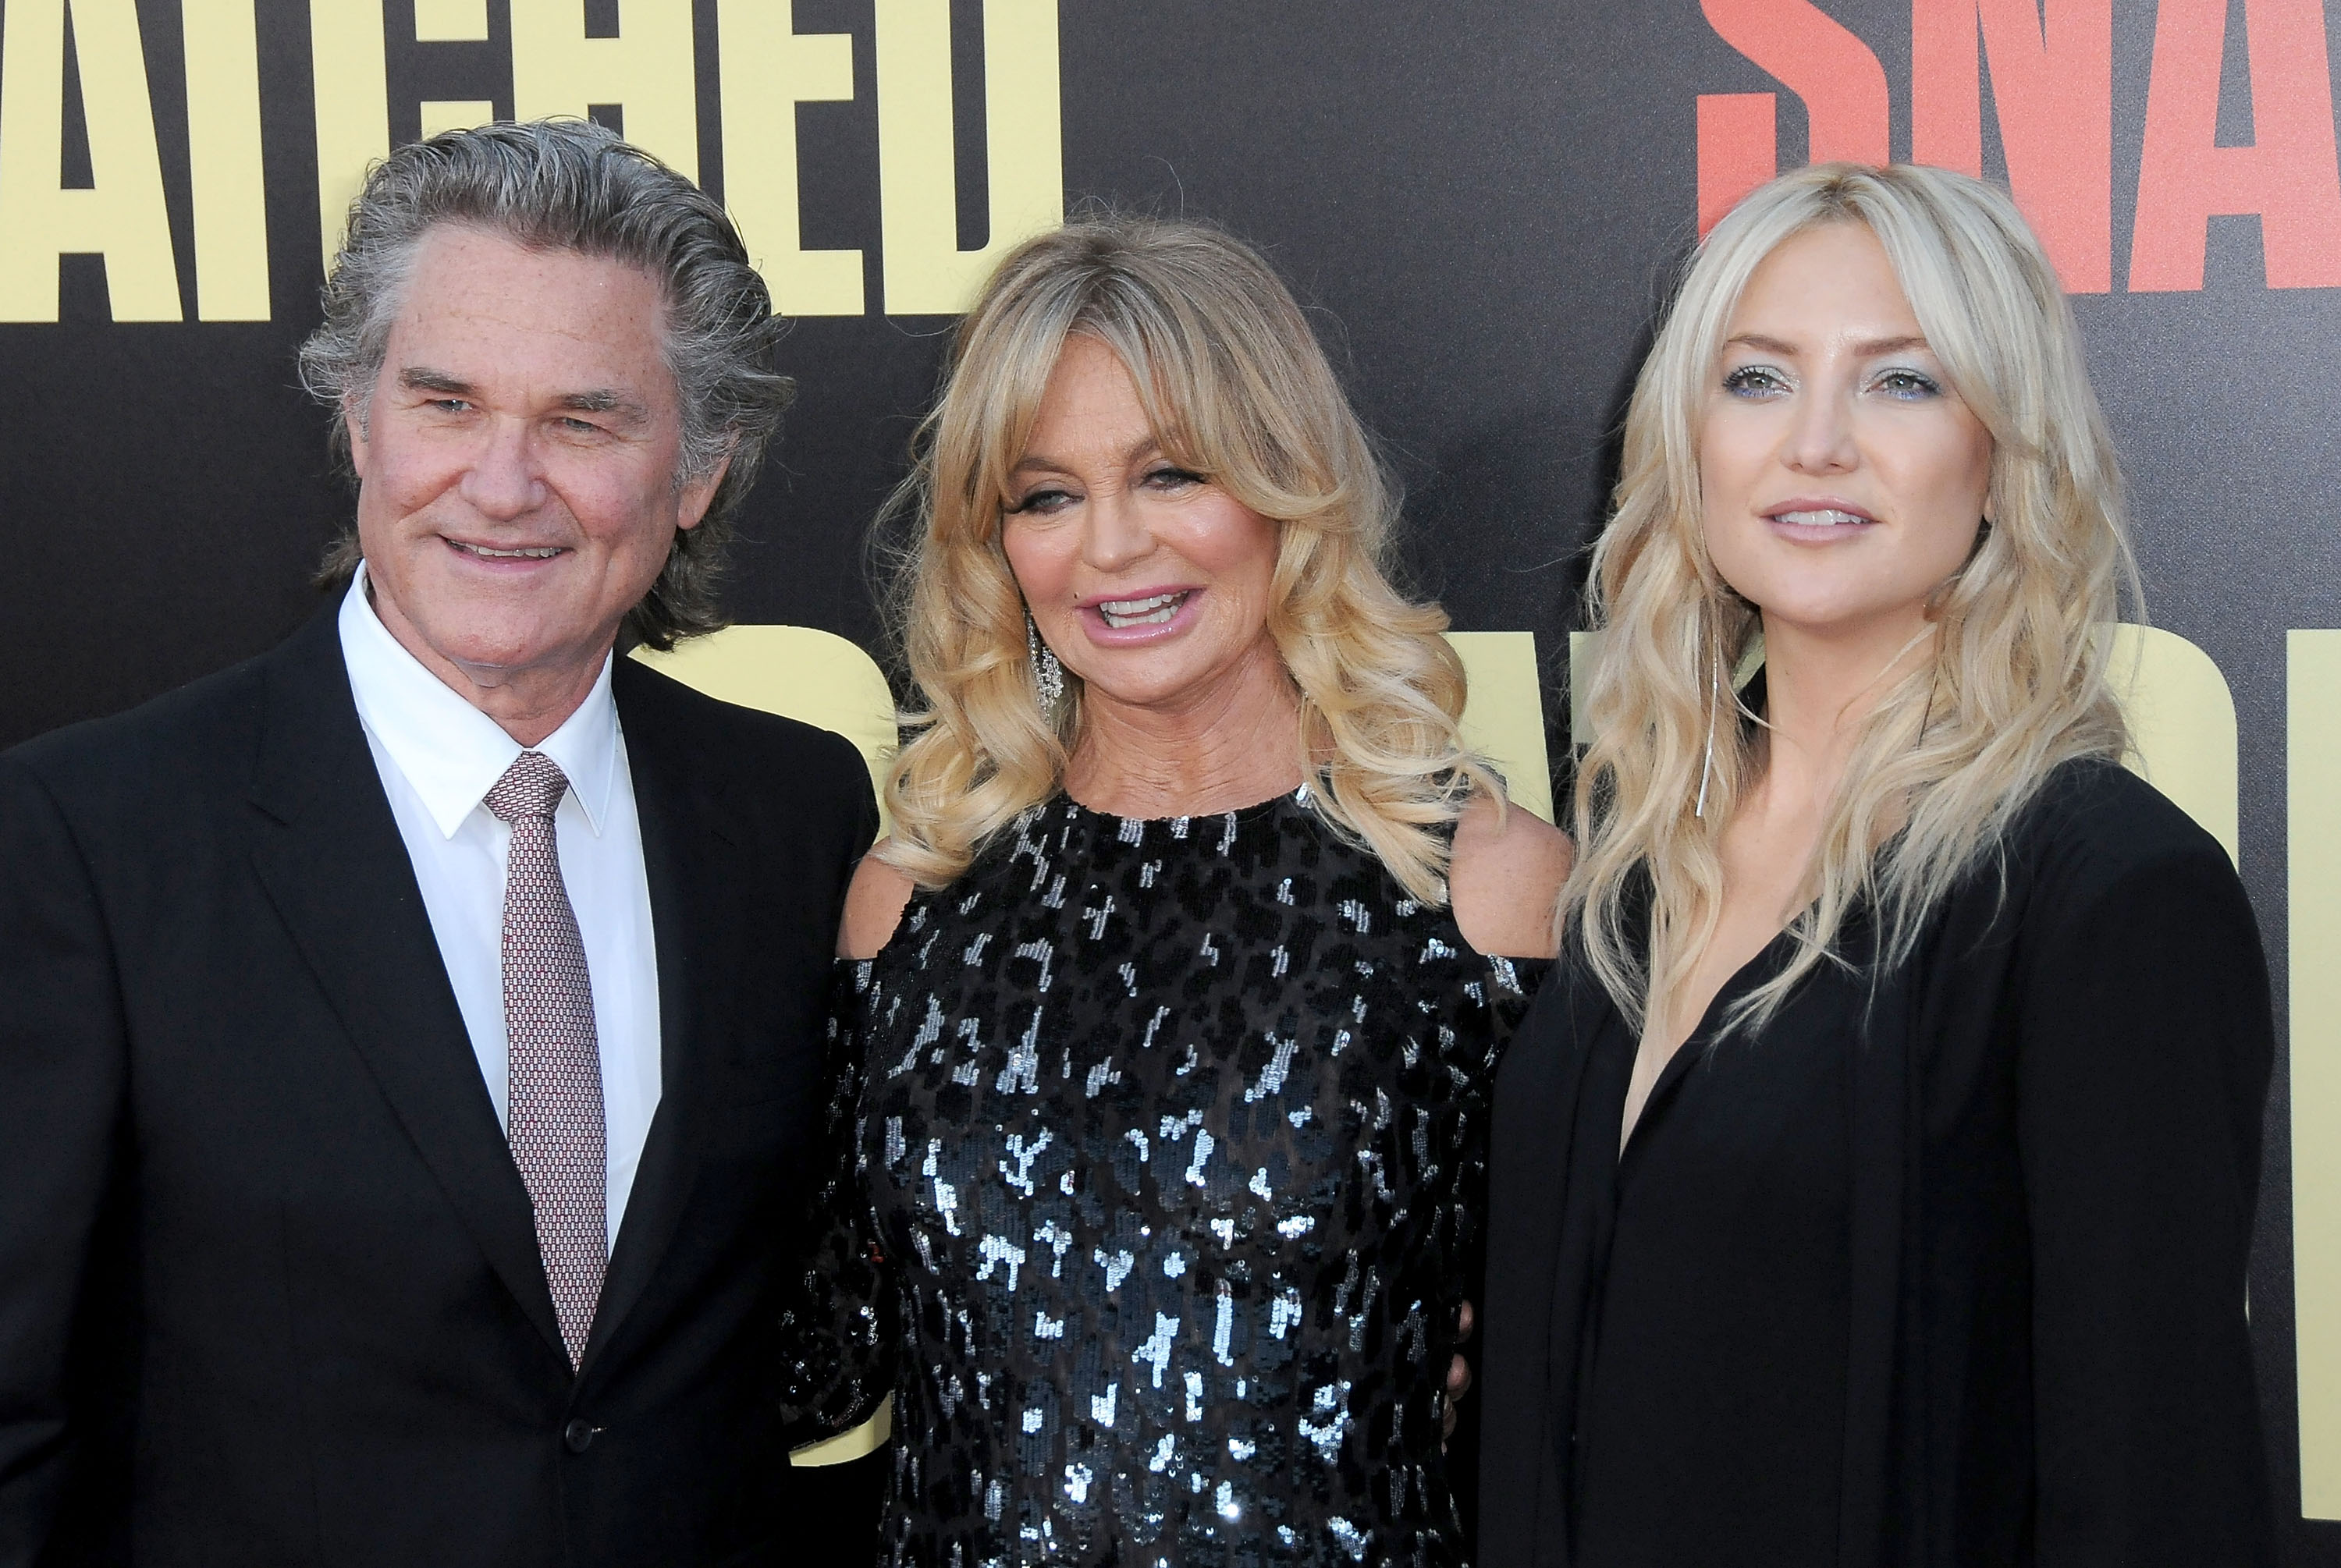 Kurt Russell, actresses Goldie Hawn and Kate Hudson attend premiere of 20th Century Fox's' 'Snatched' at Regency Village Theatre on May 10, 2017 in Westwood, California.   Source: Getty Images